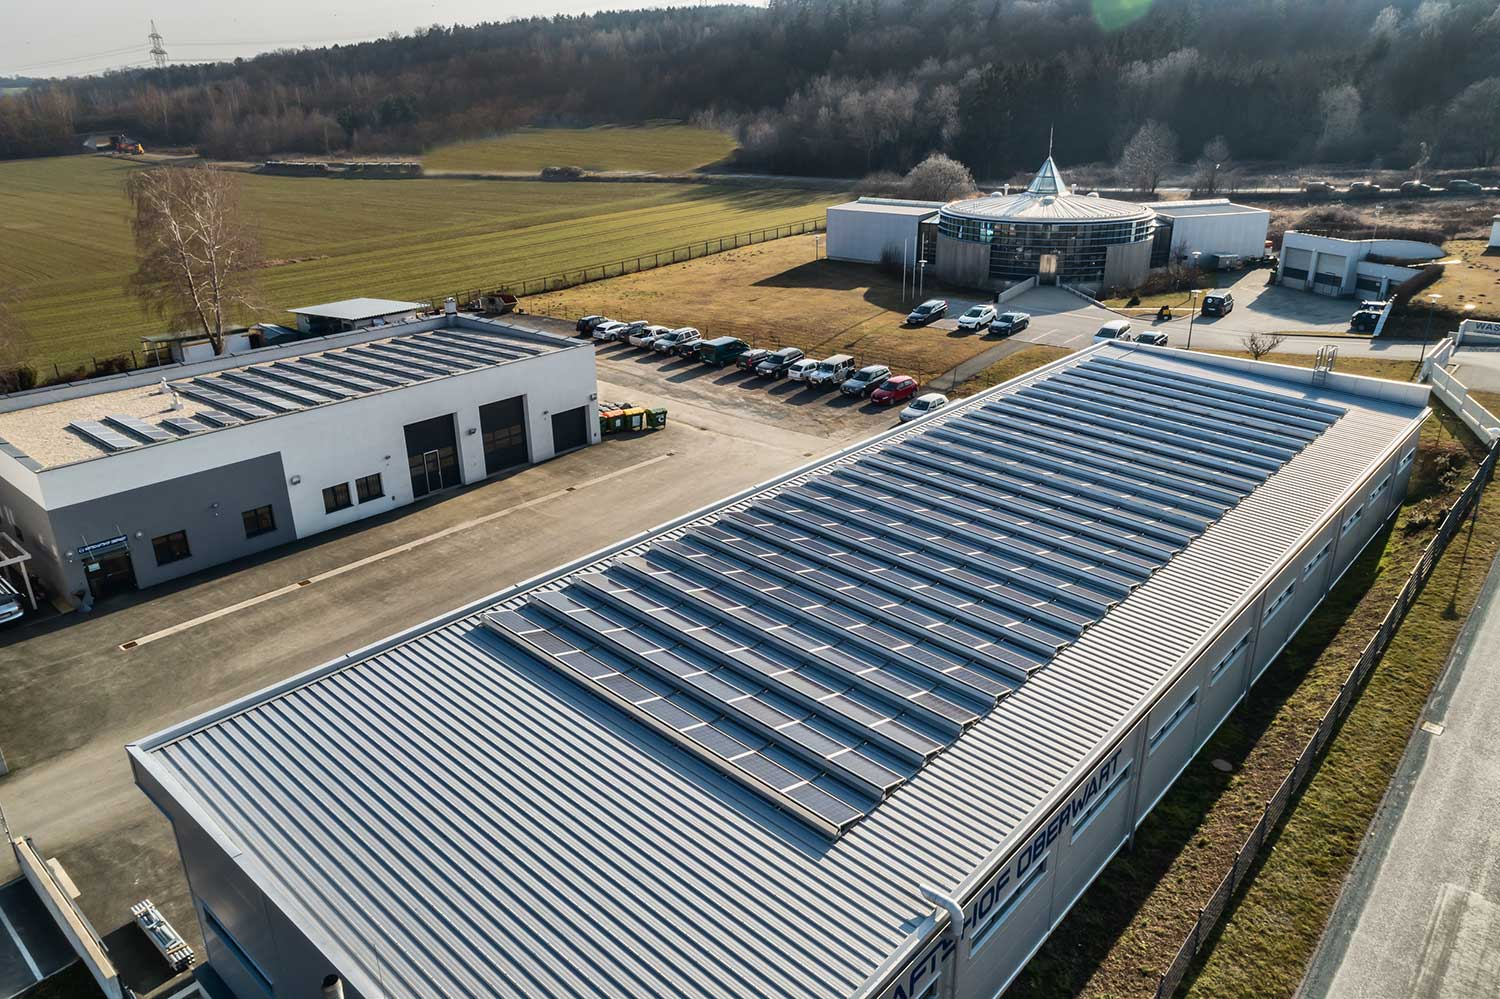 Photovoltaic facility and waterworks, photo: act4.energy